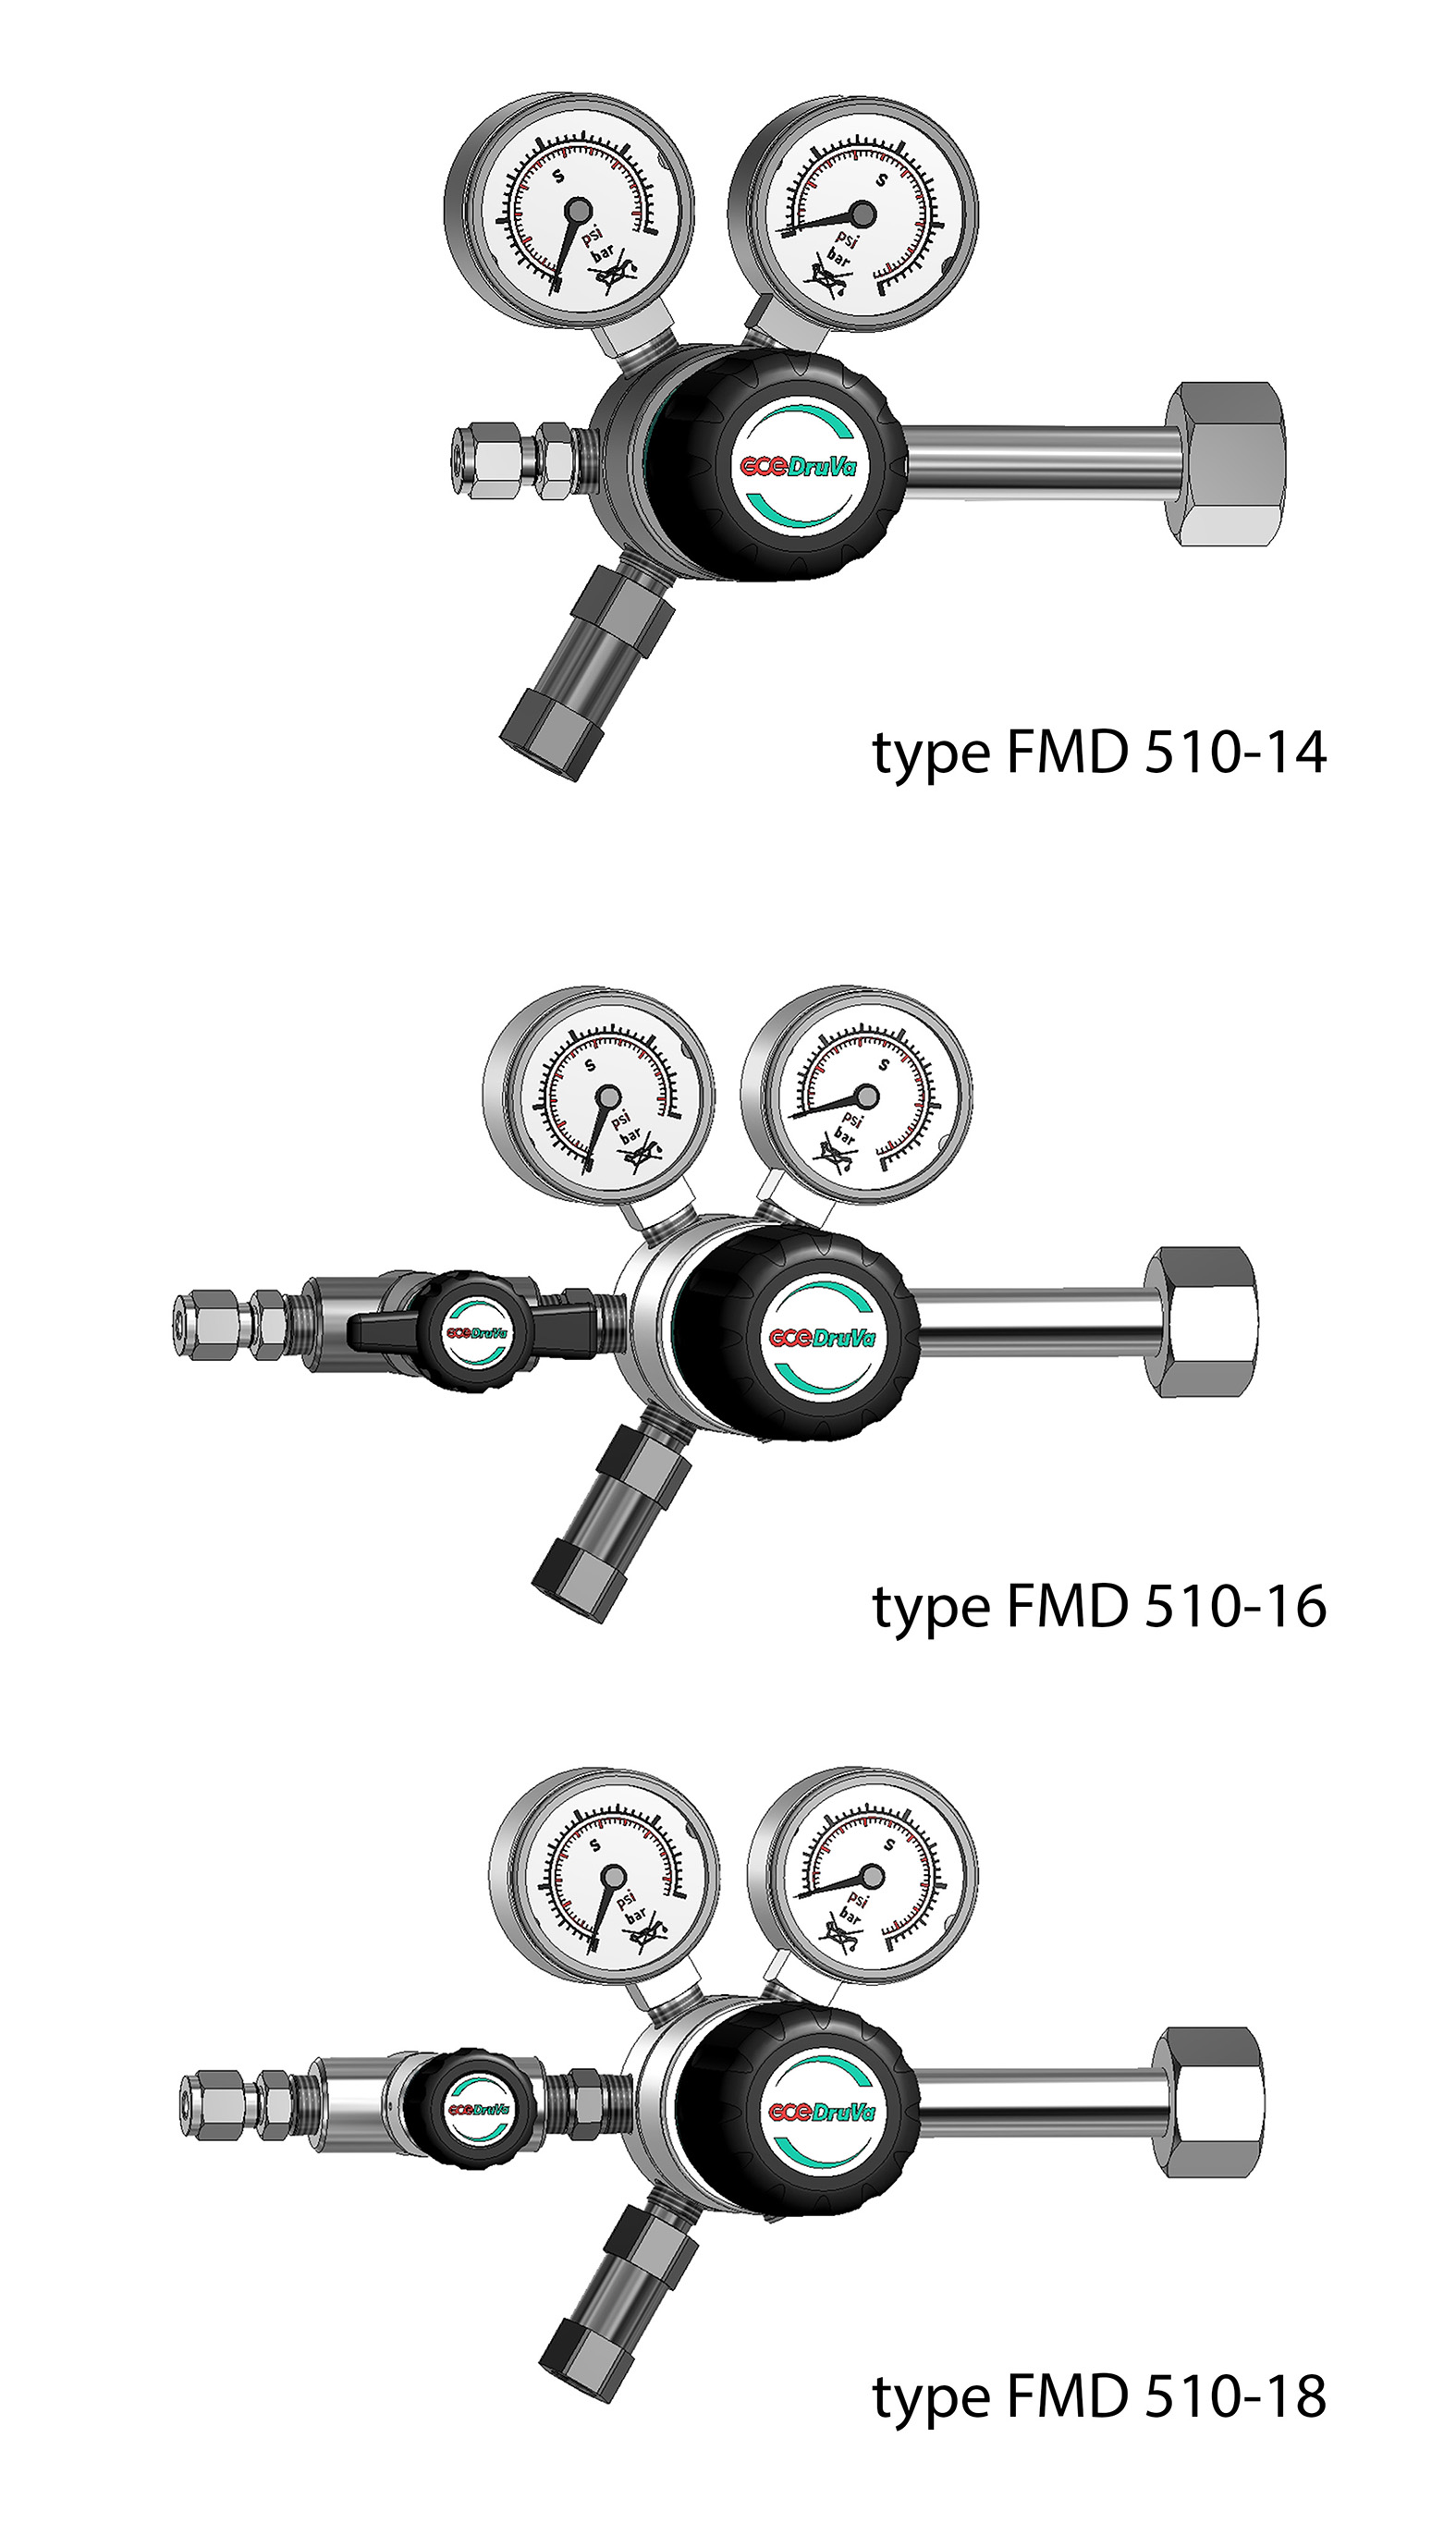 FMD510/540 1-STAGE REGULATOR LOW PRESSURE 6.0 page image